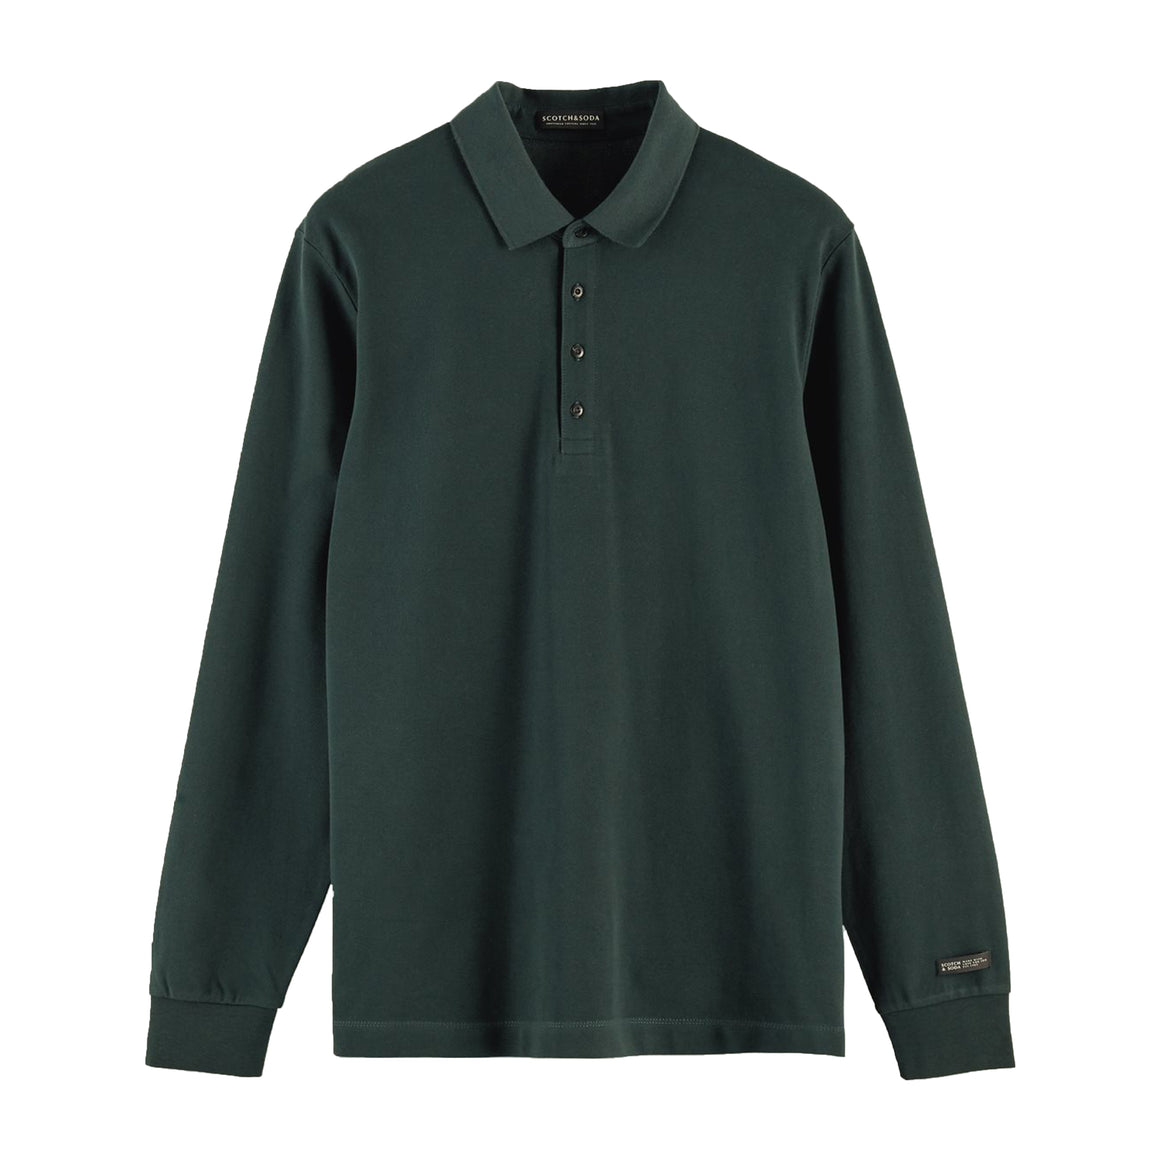 Long Sleeve Pique Polo for Men in Fern